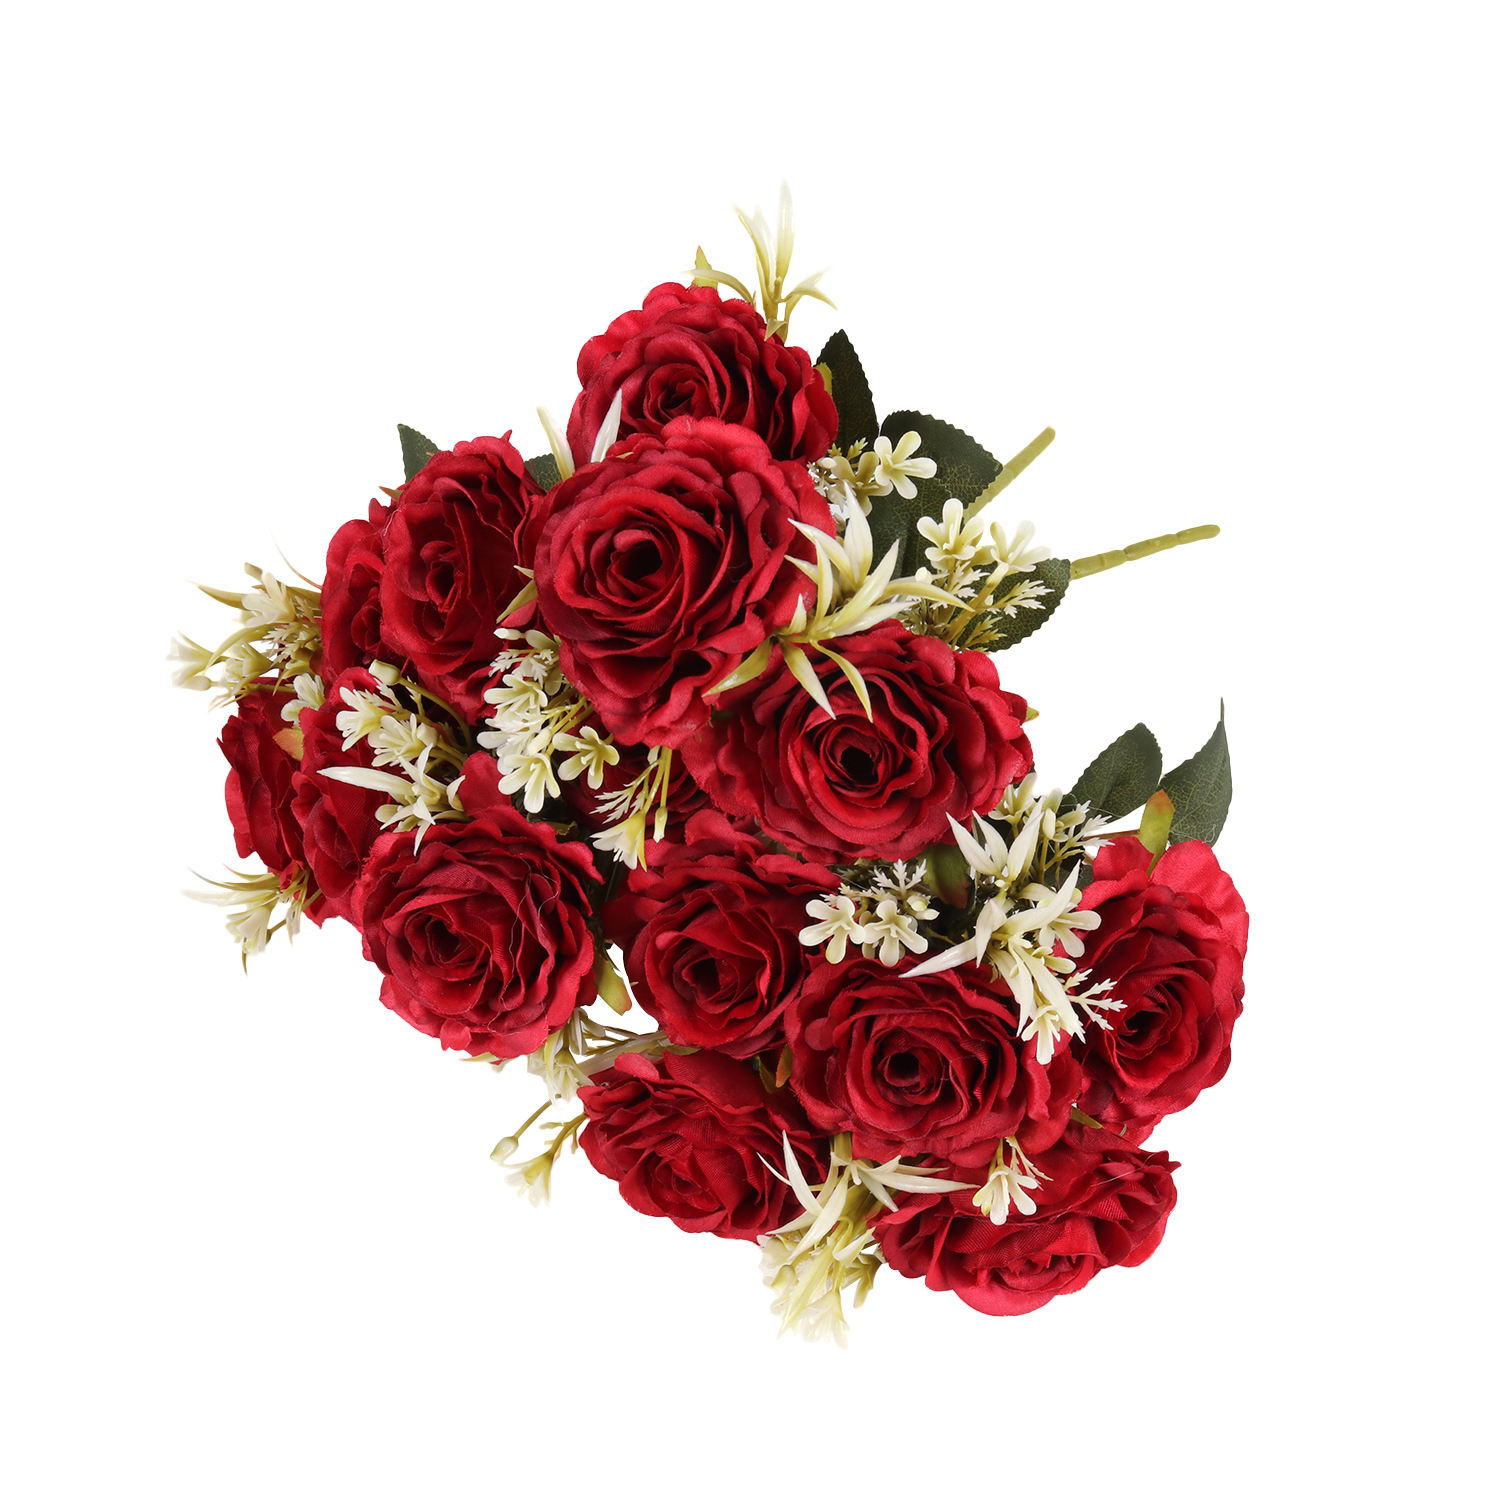 Gift flower valentines day bouquet arrangement bunch foam 5 artificial flowers heads polish roses for wedding decoration